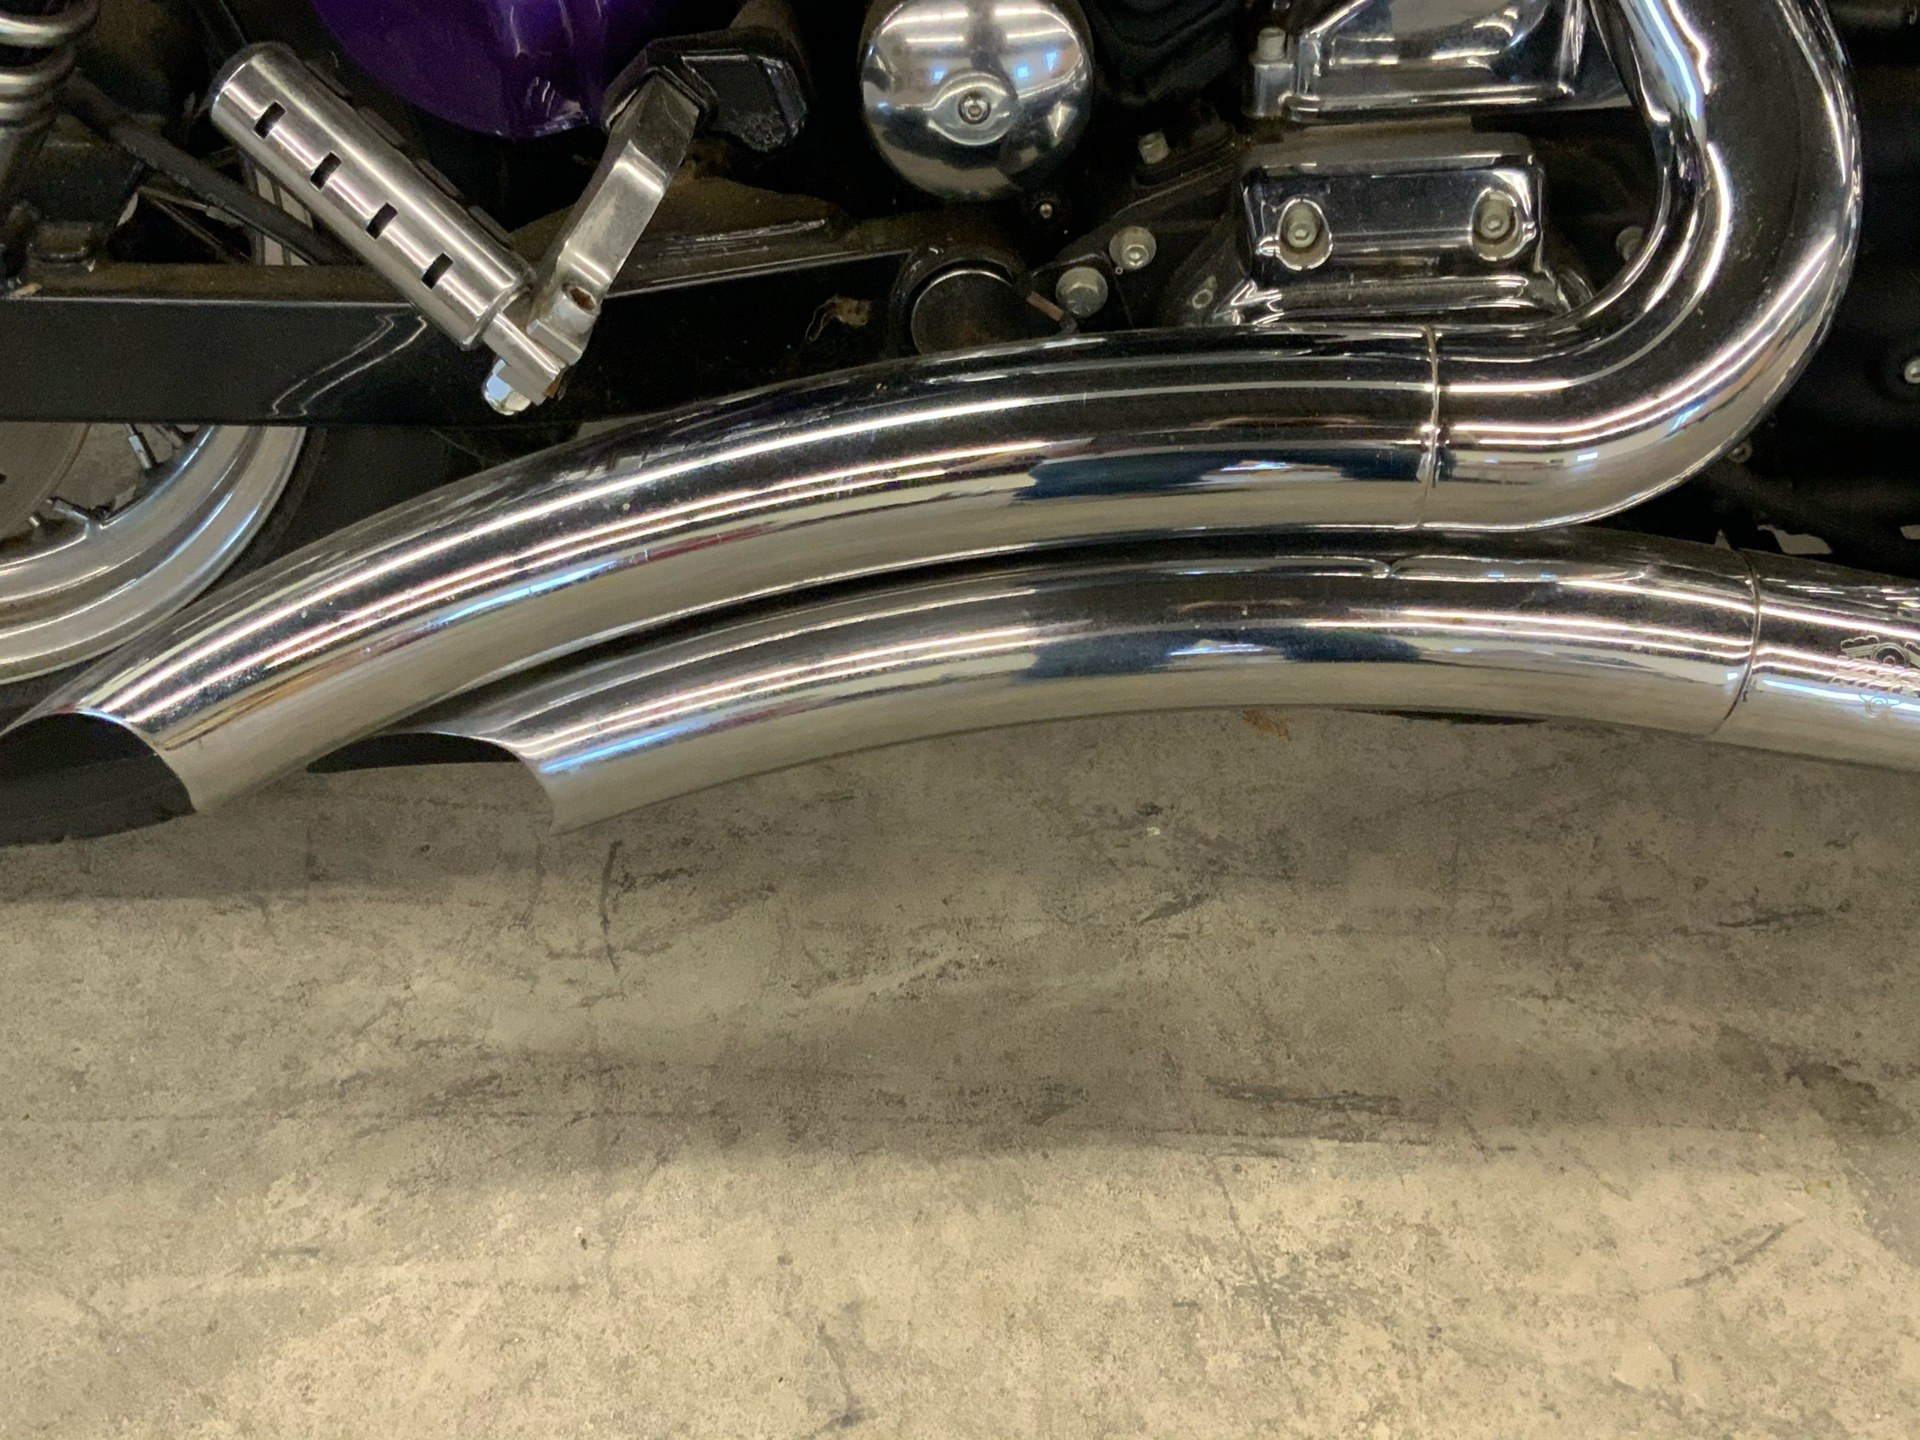 2005 Harley-Davidson FXDL/FXDLI Dyna Low Rider® in Flint, Michigan - Photo 12